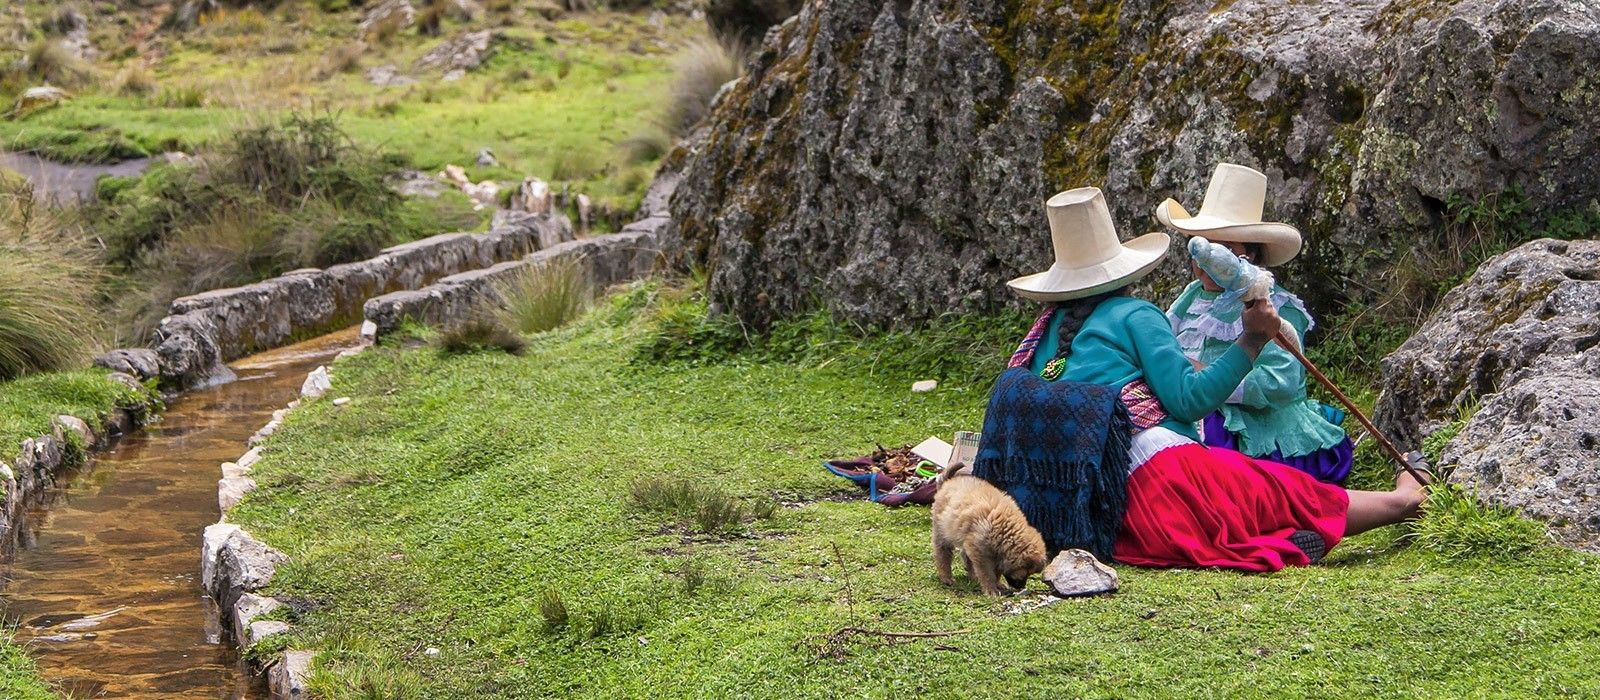 Destination Cajamarca Peru